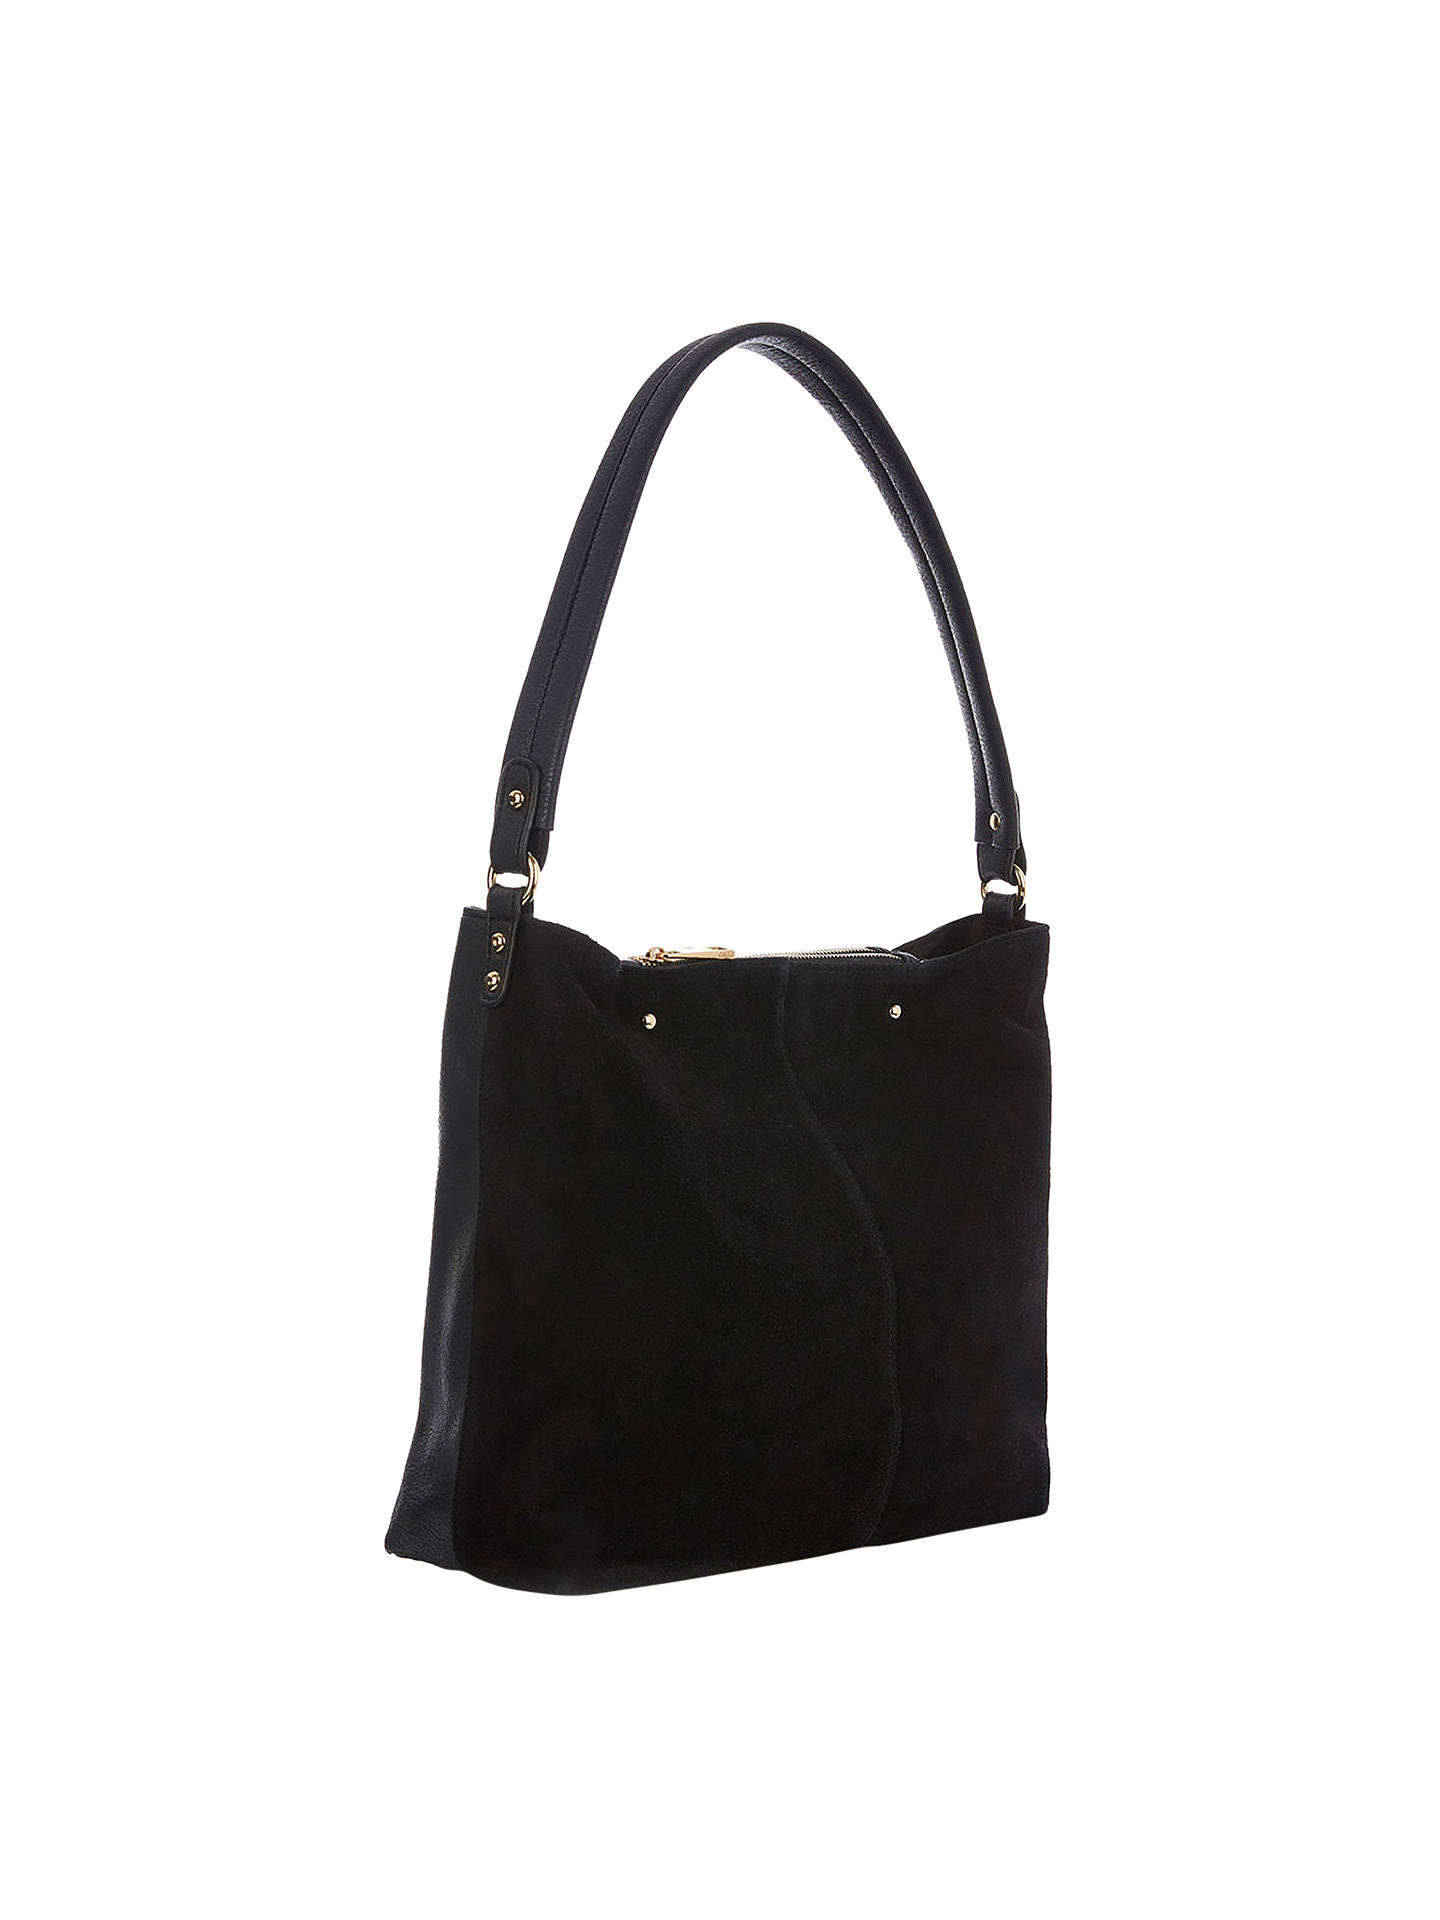 Oasis Ruby Suede Hobo Bag Black Online At Johnlewis